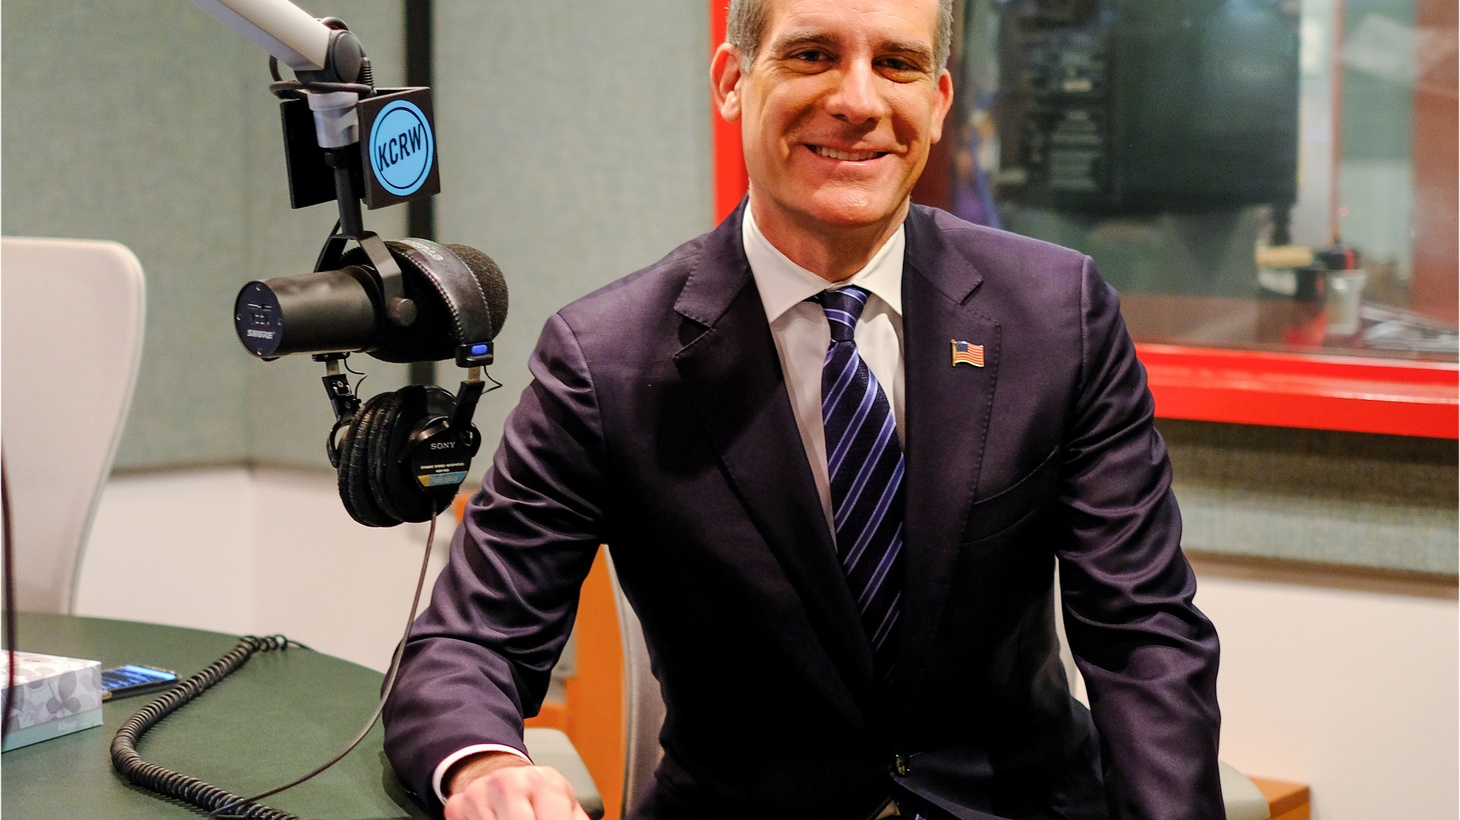 Eric Garcetti talks about his call to end homelessness and what that looks like. He wants to put emergency shelters in every council district, and disputes criticism that 1500 beds is a drop in the bucket.